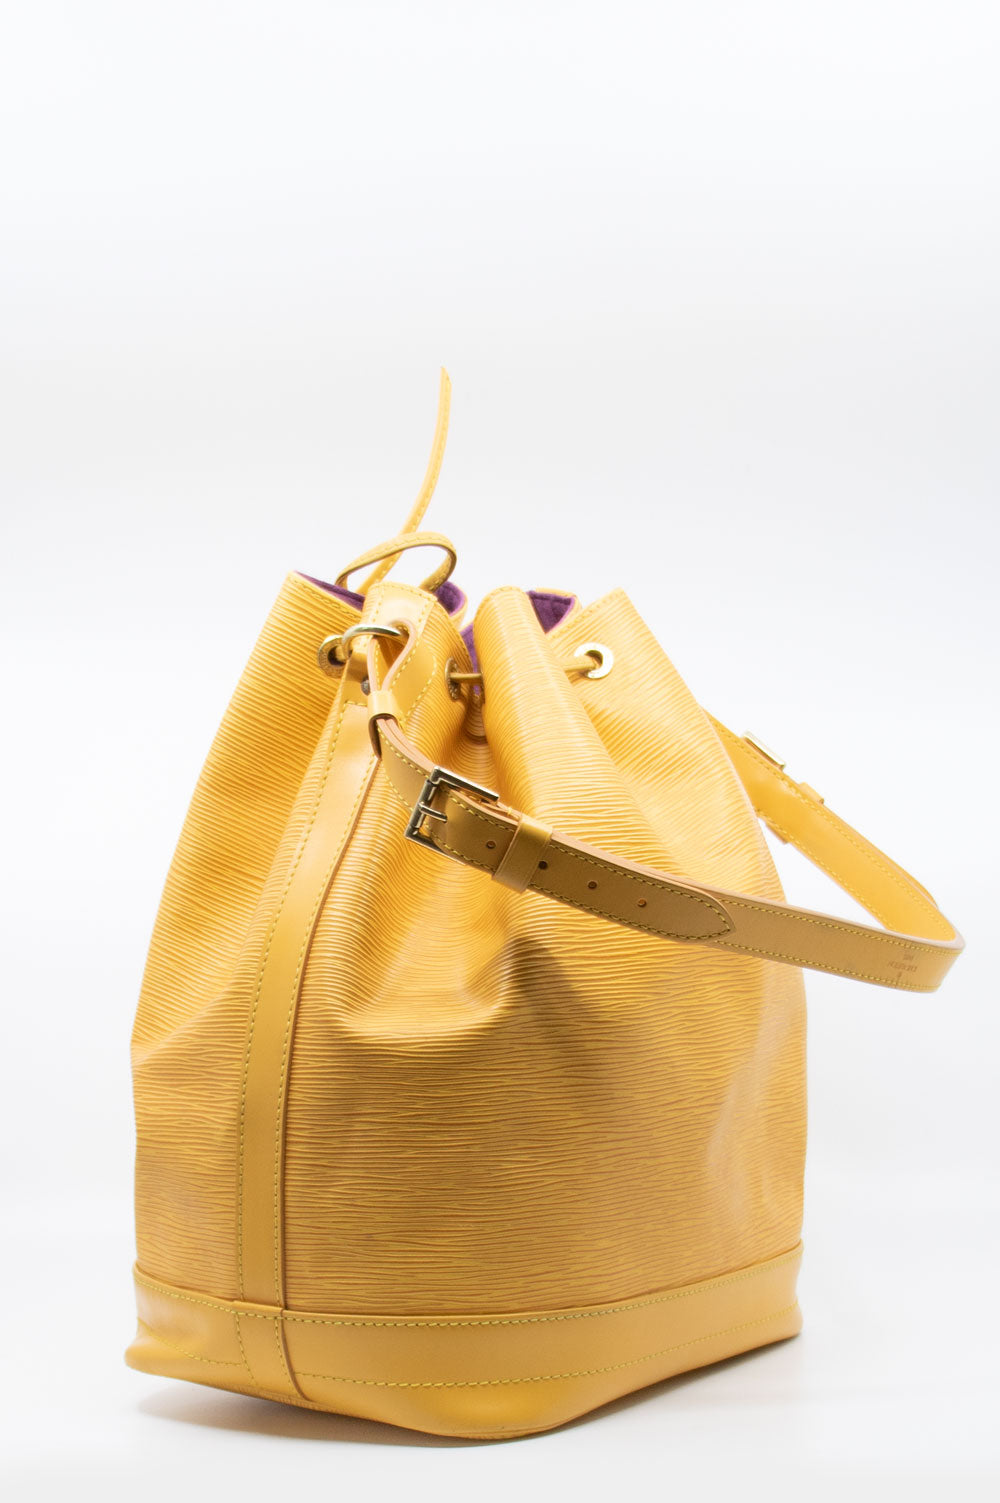 LOUIS VUITTON Grand Sac Noé Tassil Yellow